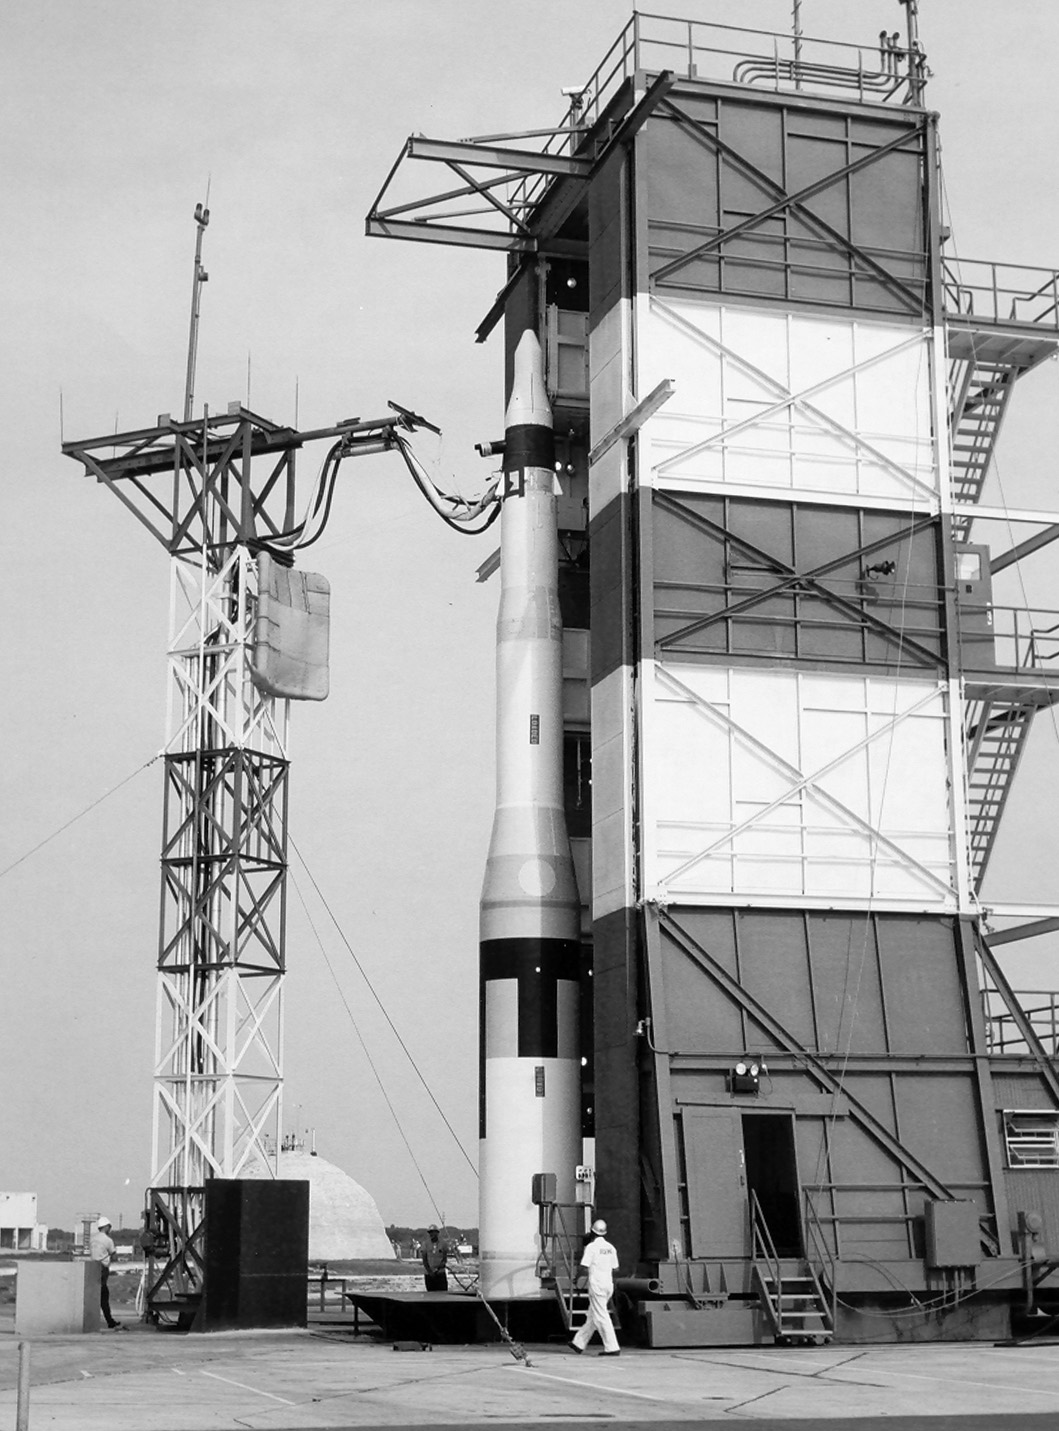 Rocket on launch pad with man in front